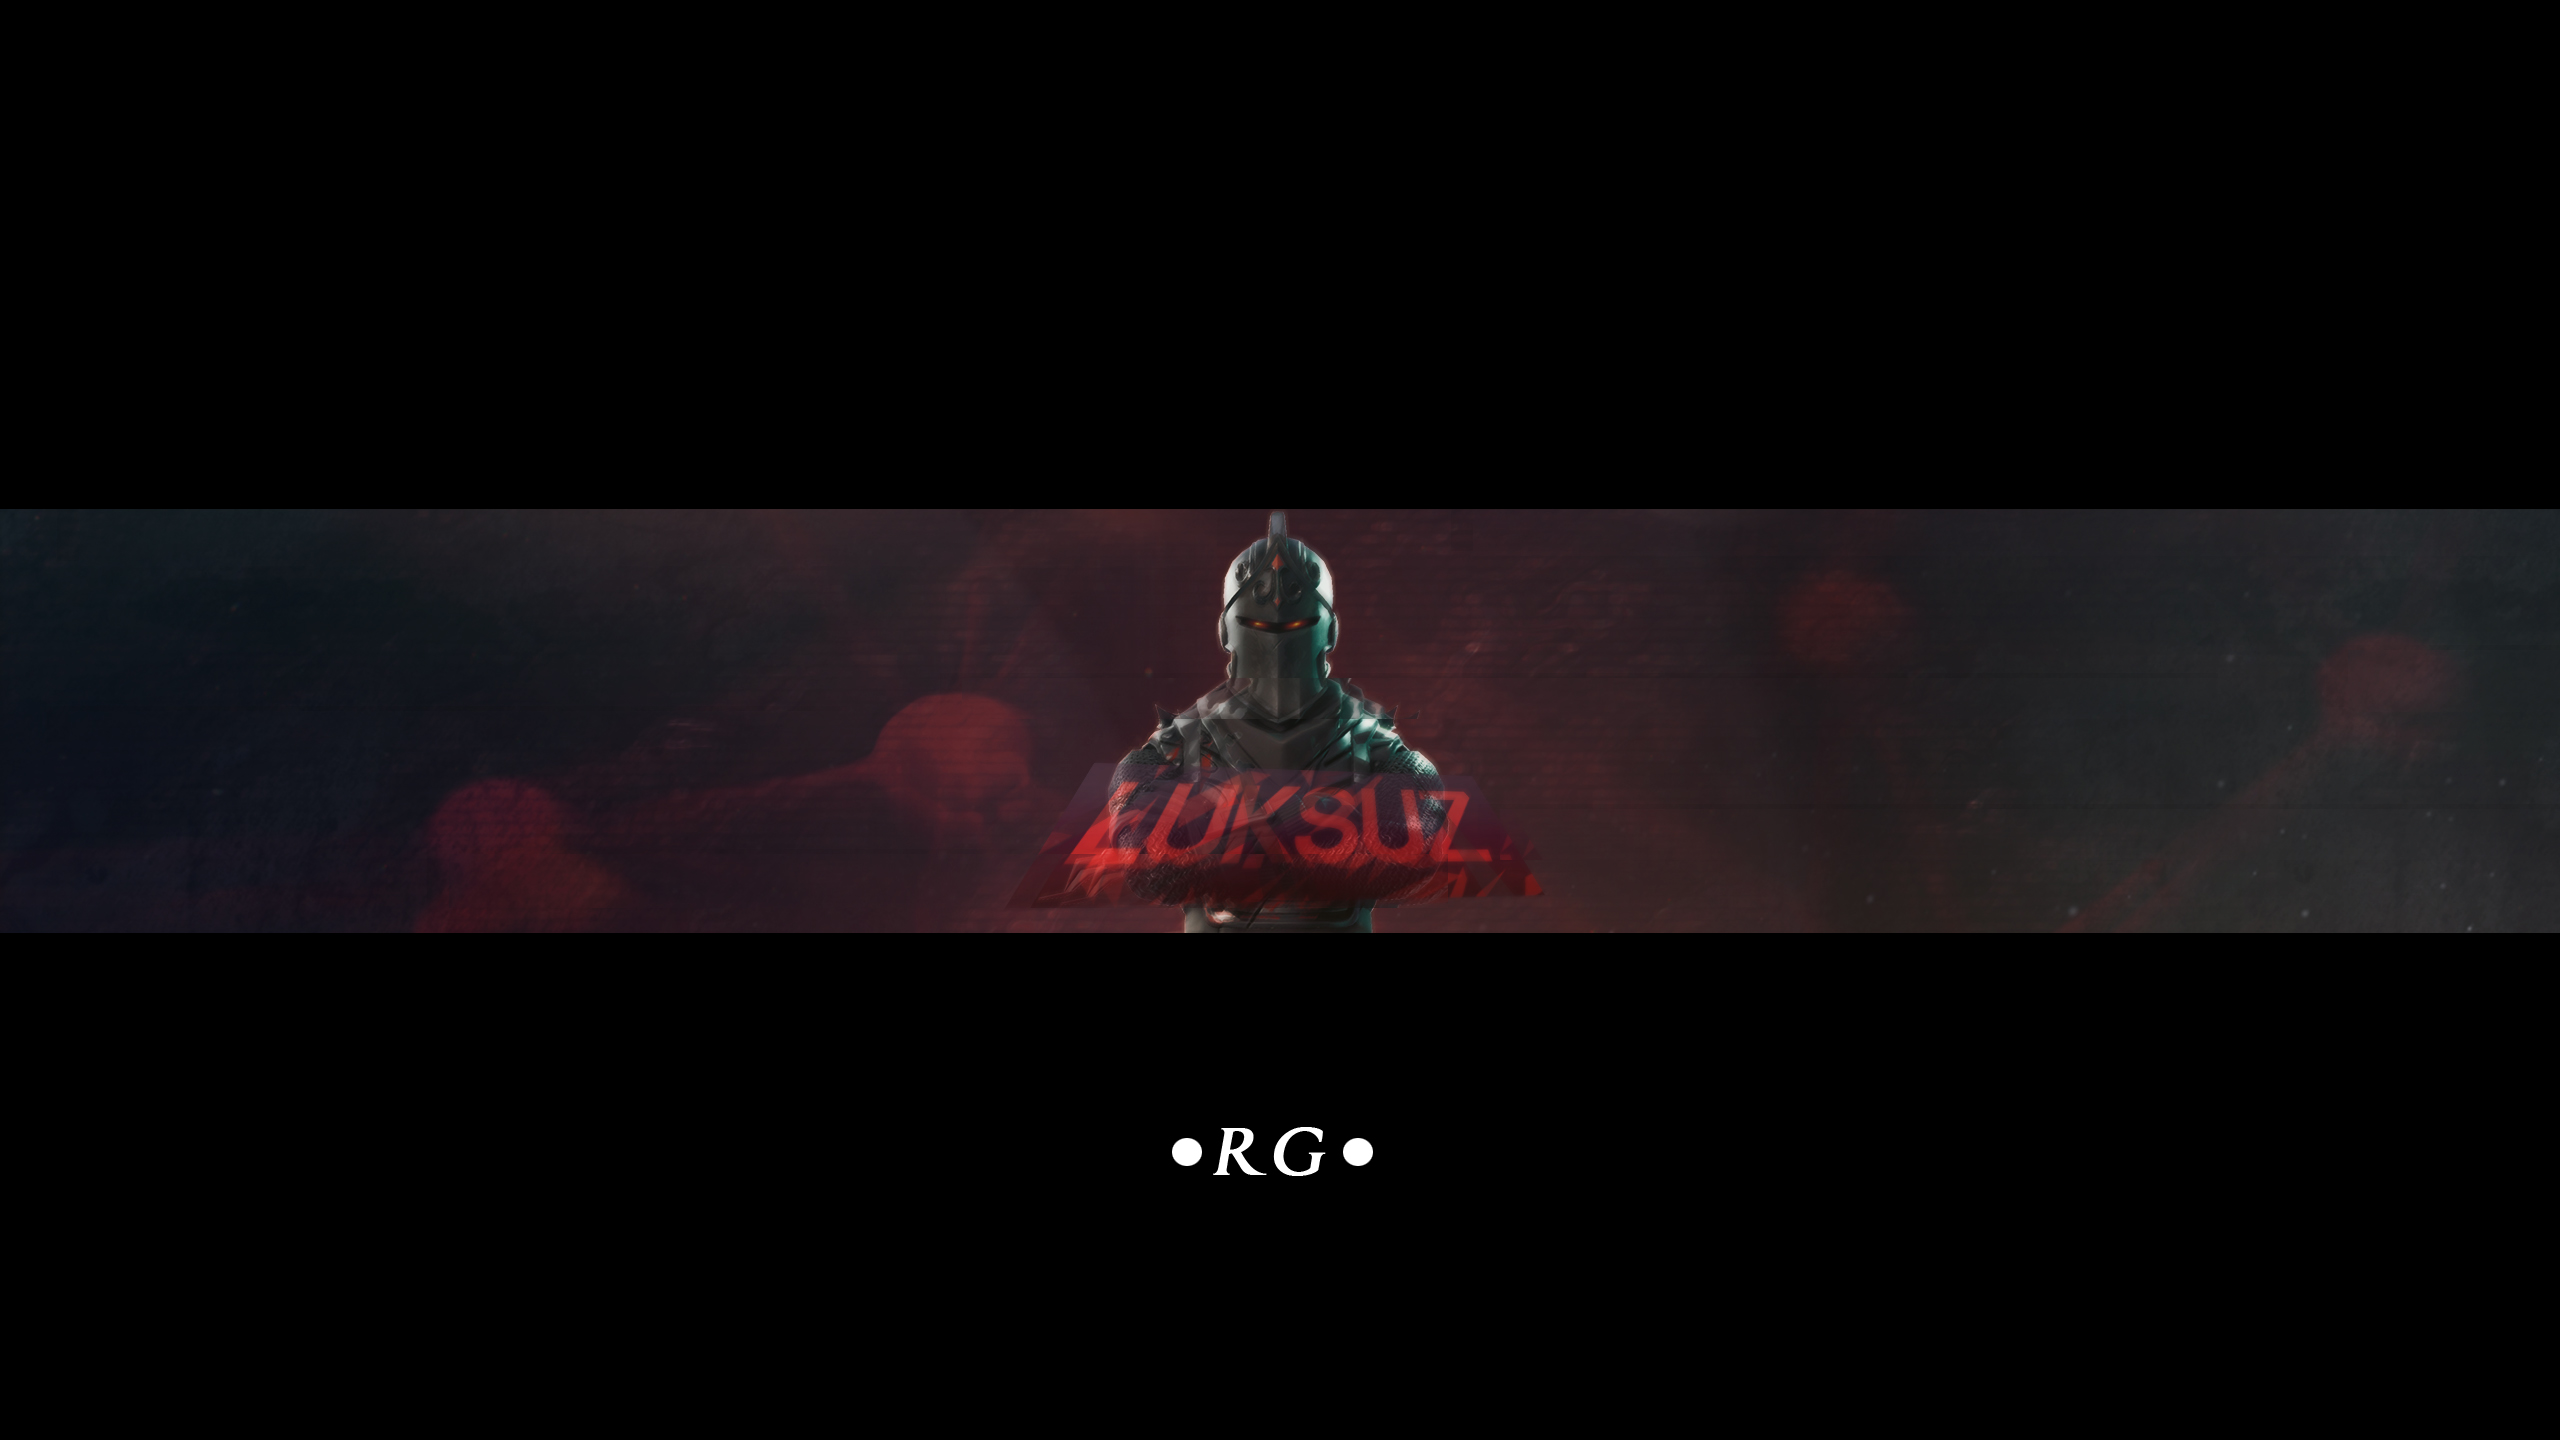 New Style Fornite Youtube Banner I Fortnite By Aronrege On